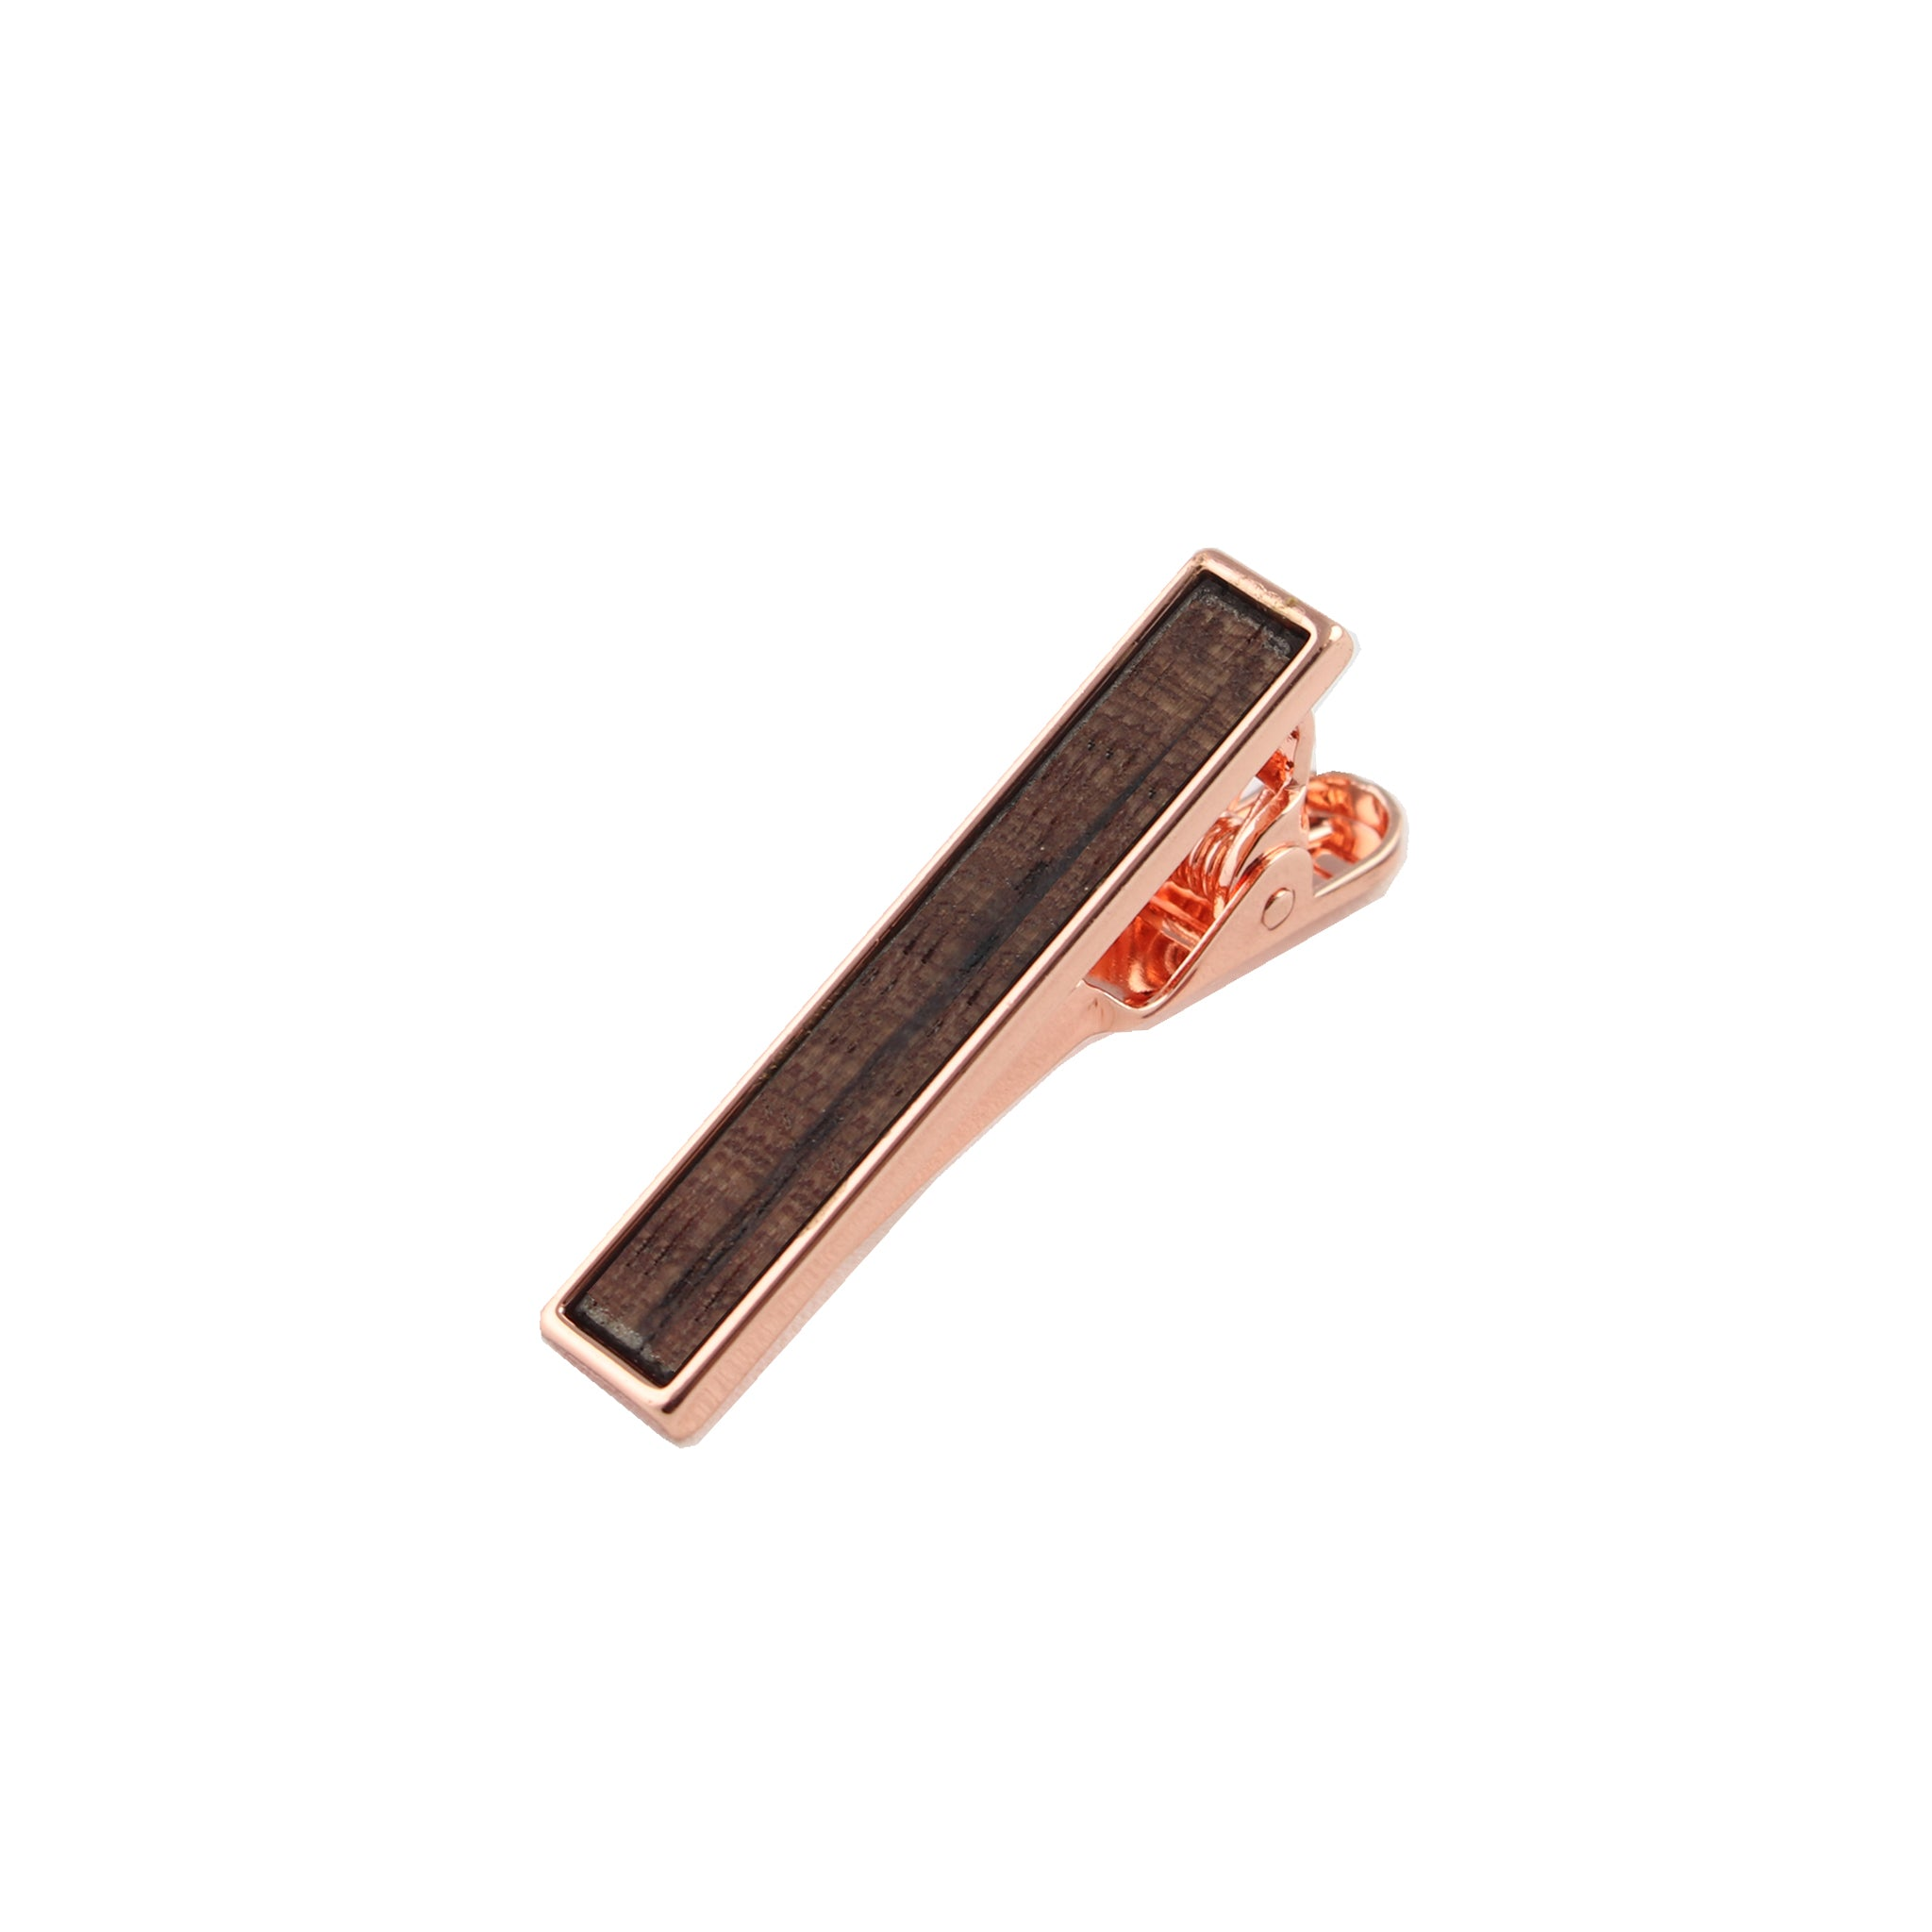 Zebra Wooden Inlay-Rose Gold Tie Bar from DIBI